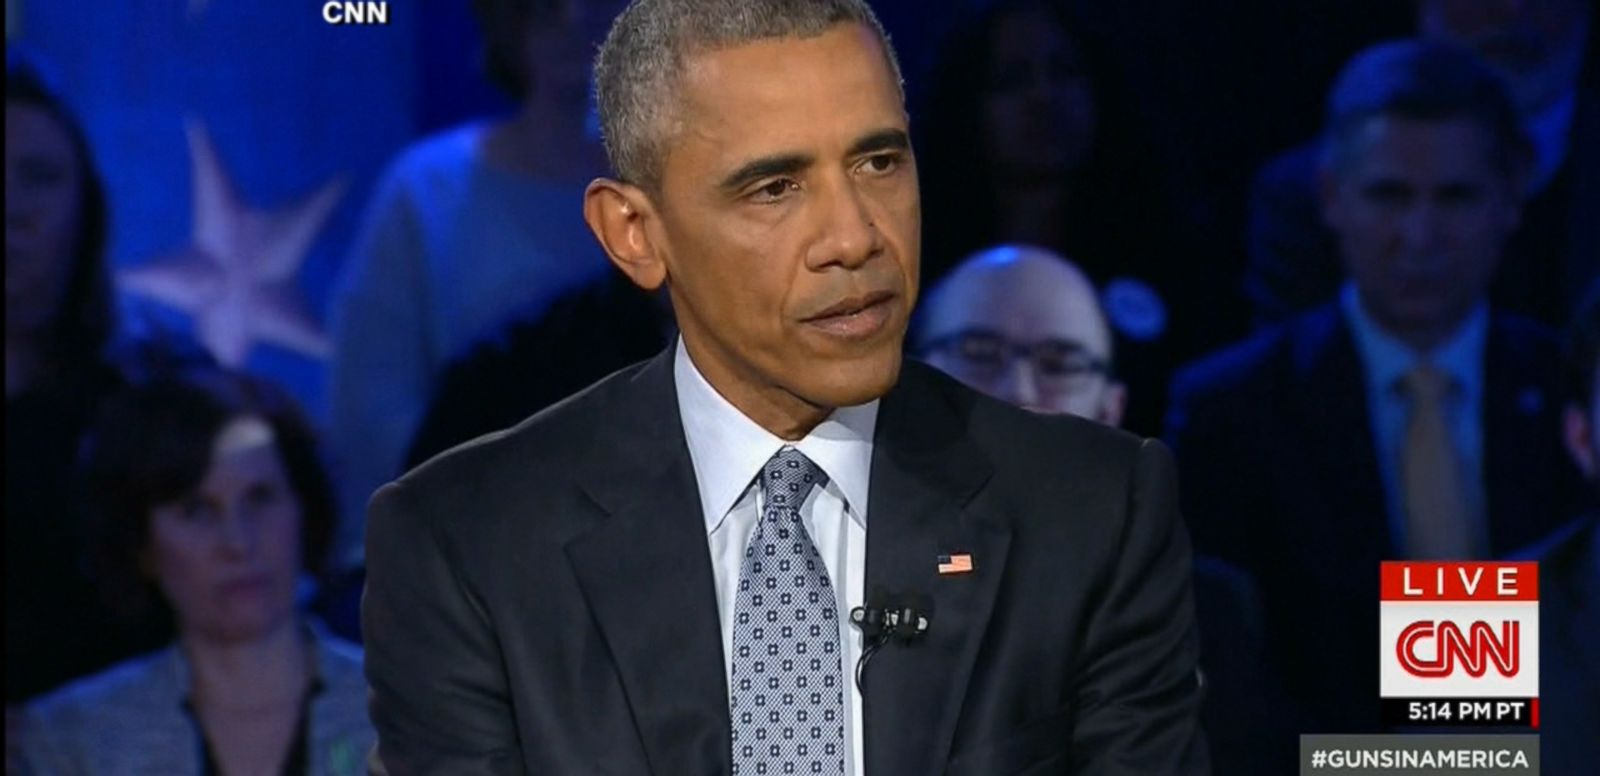 VIDEO: President Obama participated in a town hall meeting at George Mason University in an attempt to explain a new wave of executive actions his administration is taking to curb gun violence.